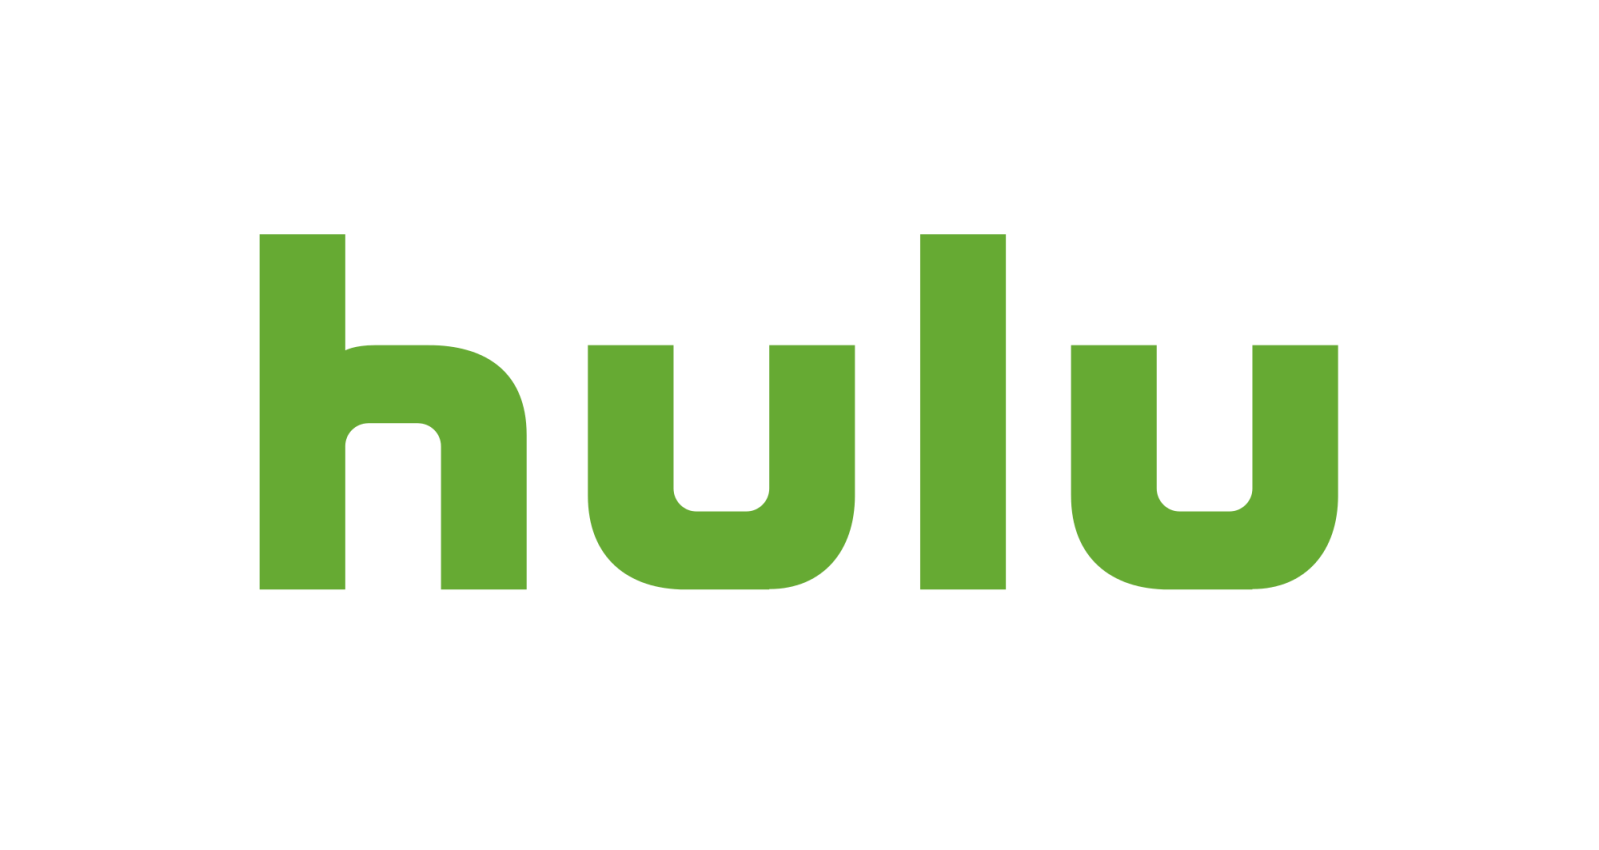 IPTV proves popular as Hulu TV now crosses one million